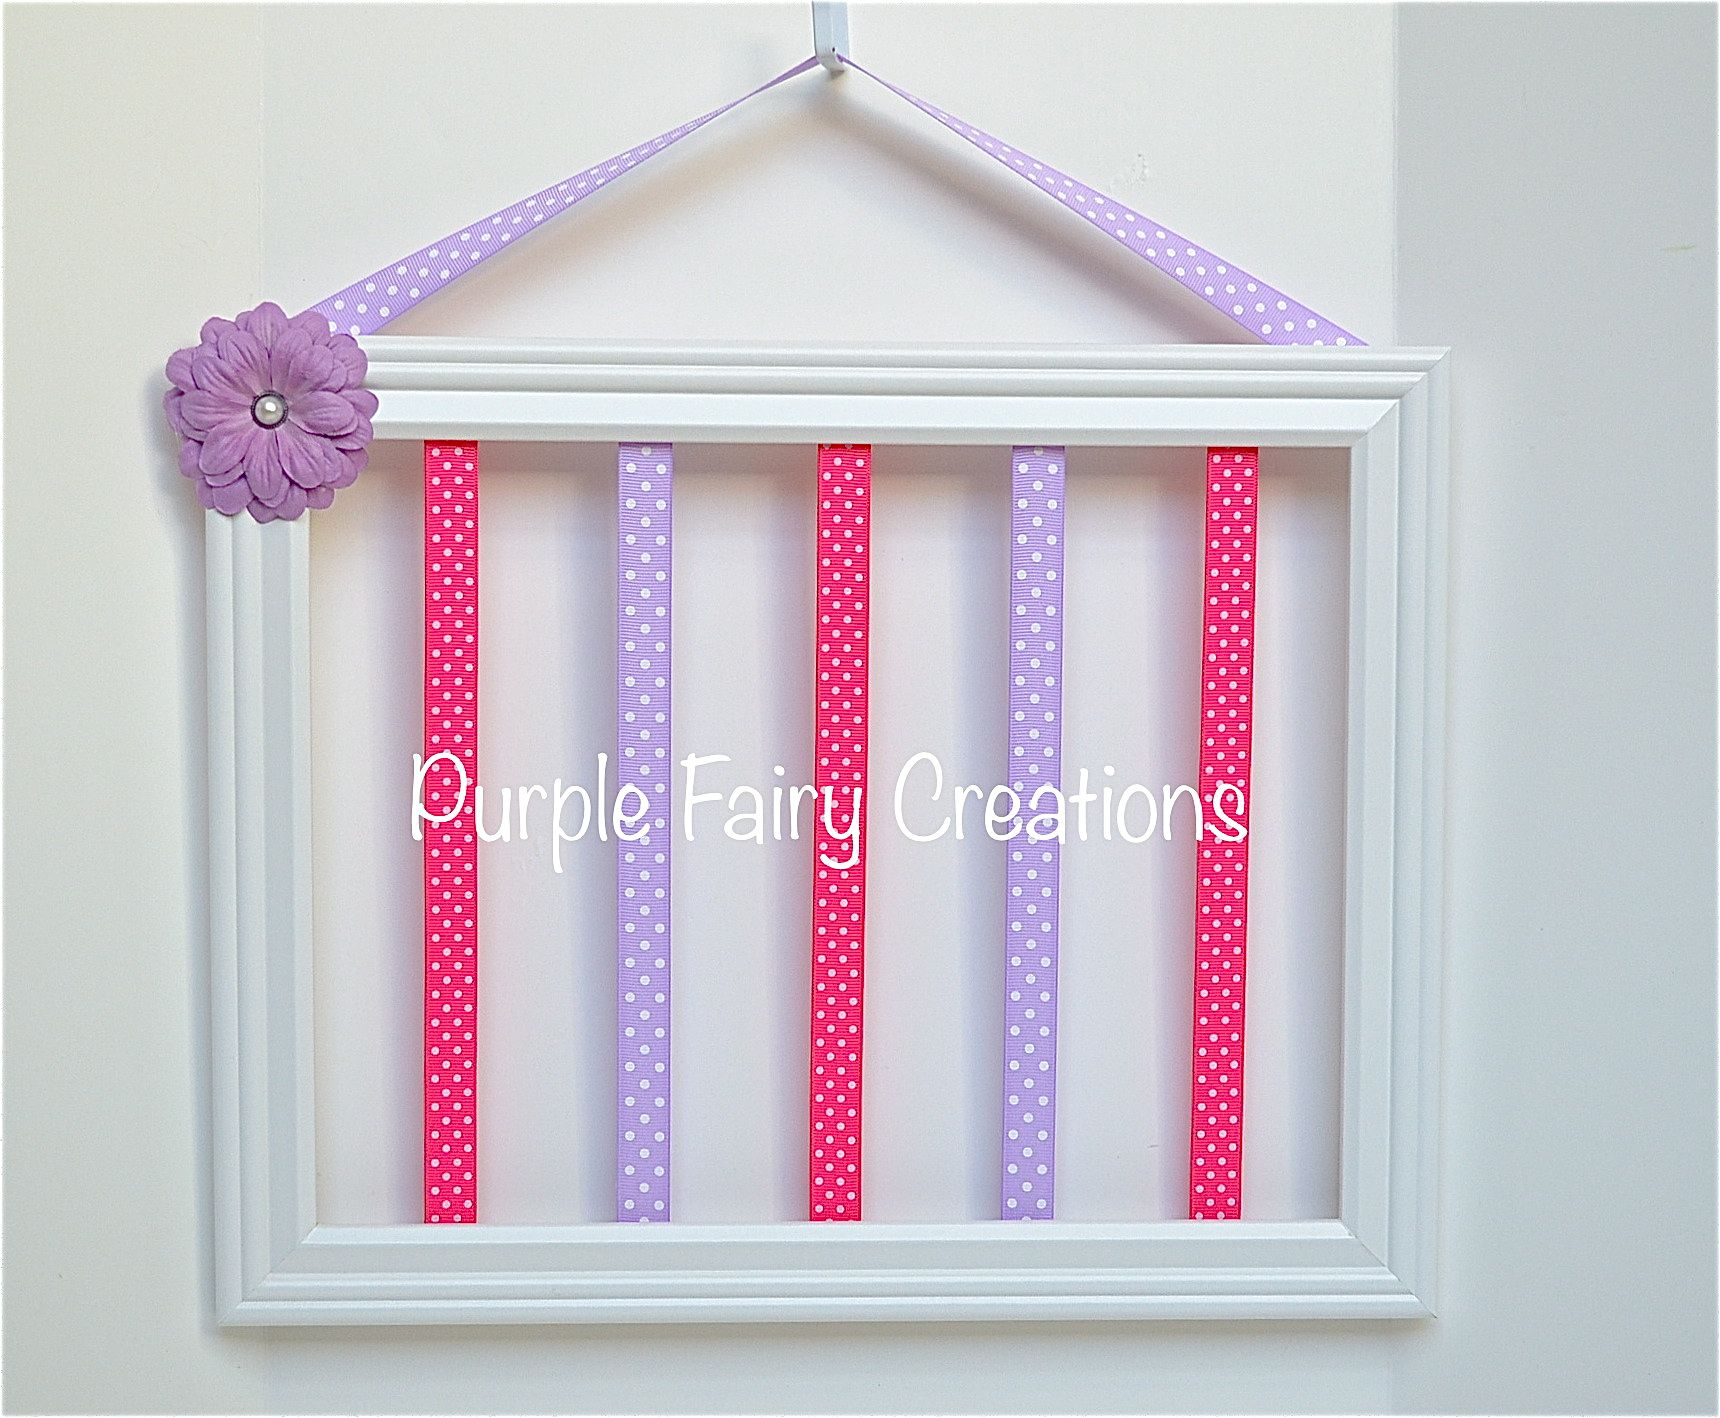 Accessories Organizer Picture Frame - White, Hot Pink, Lavender and ...